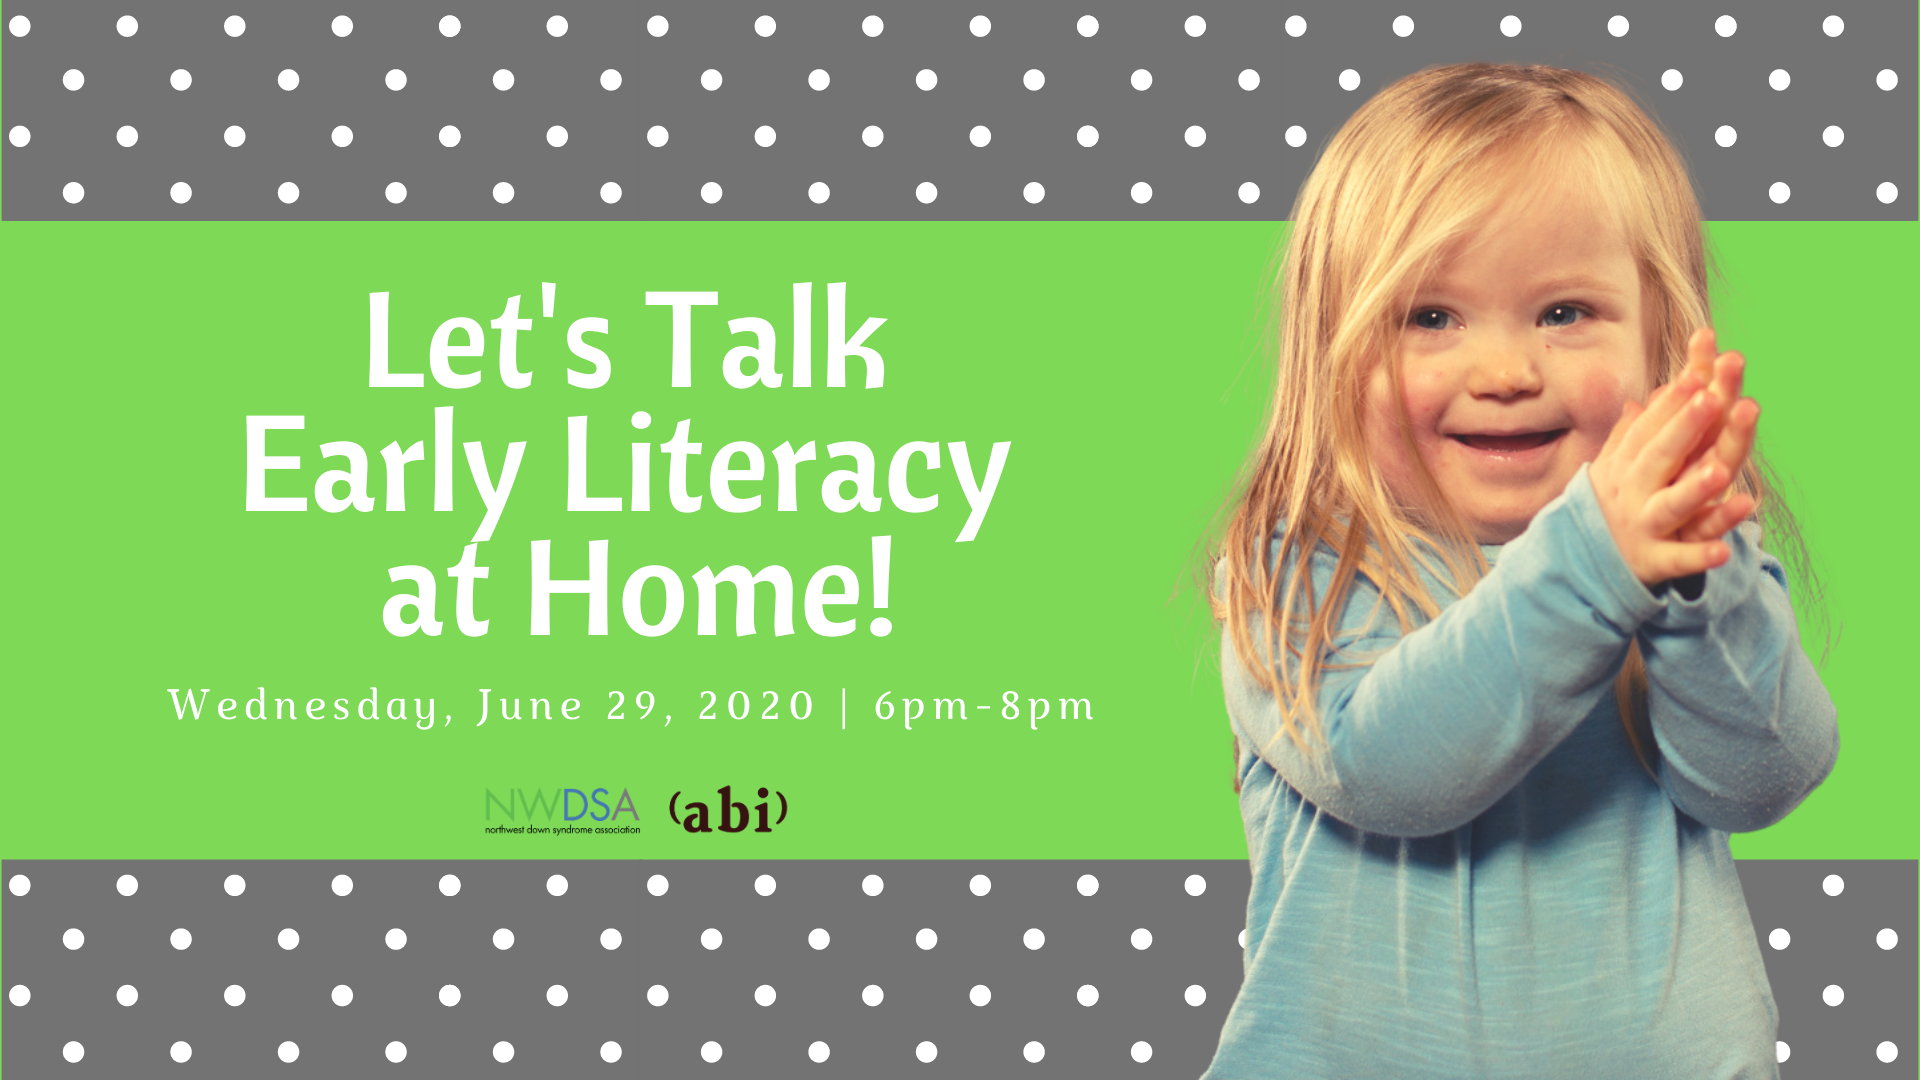 Let's Talk Early Literacy at Home!